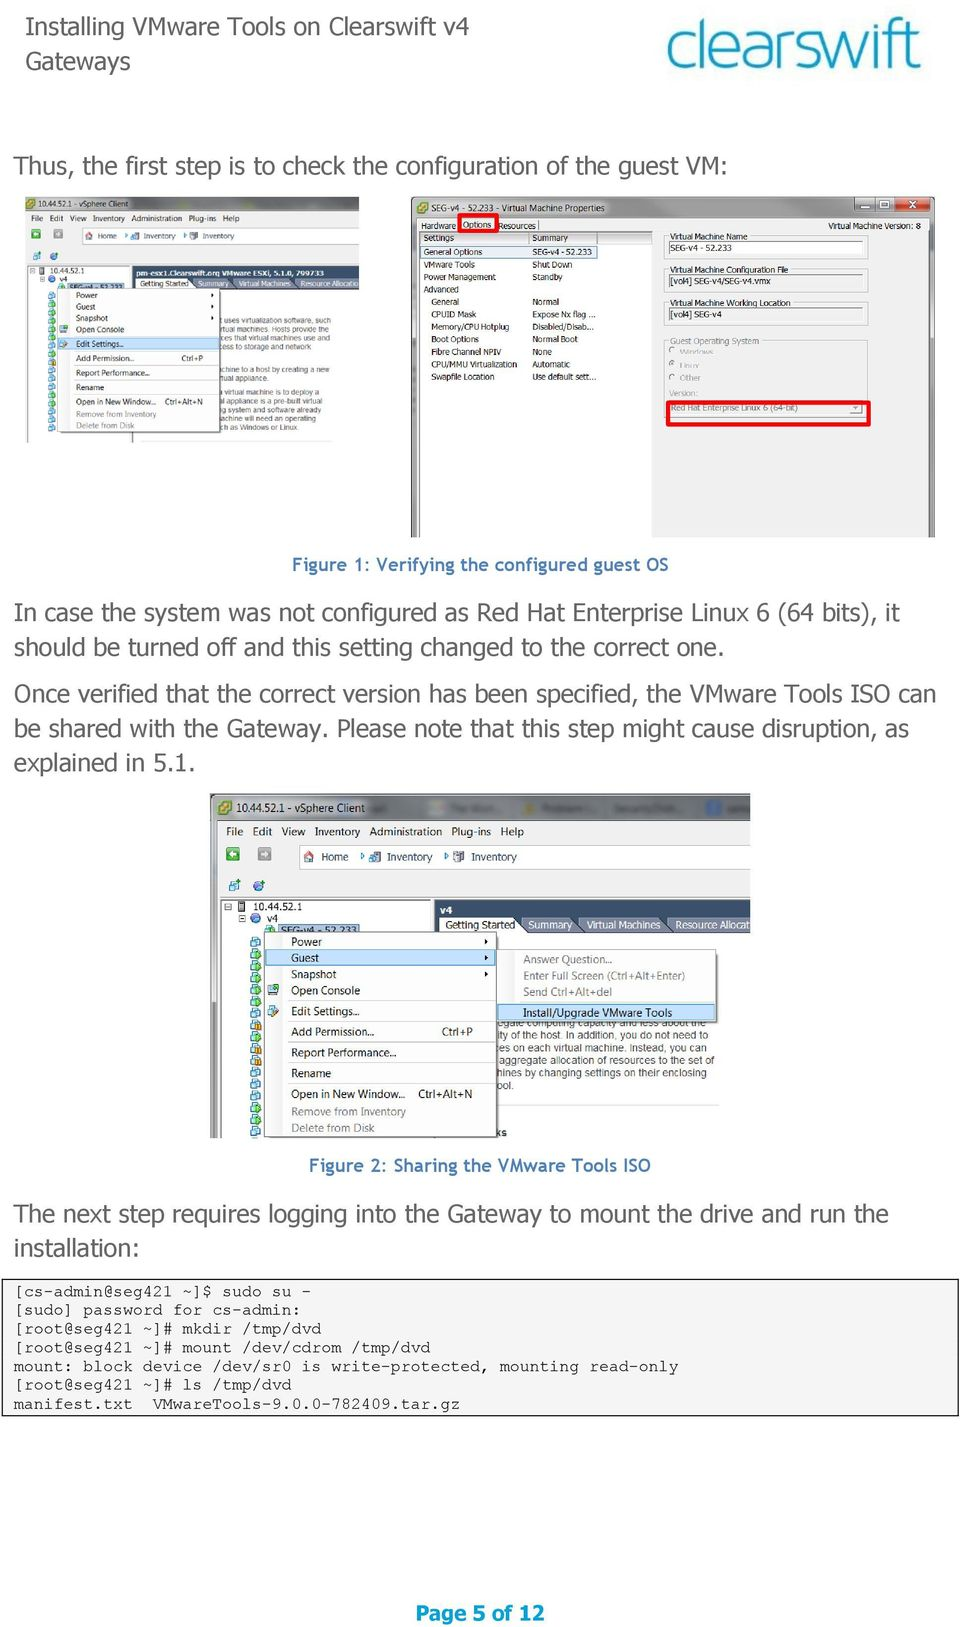 Installing VMware Tools on Clearswift v4 Gateways - PDF